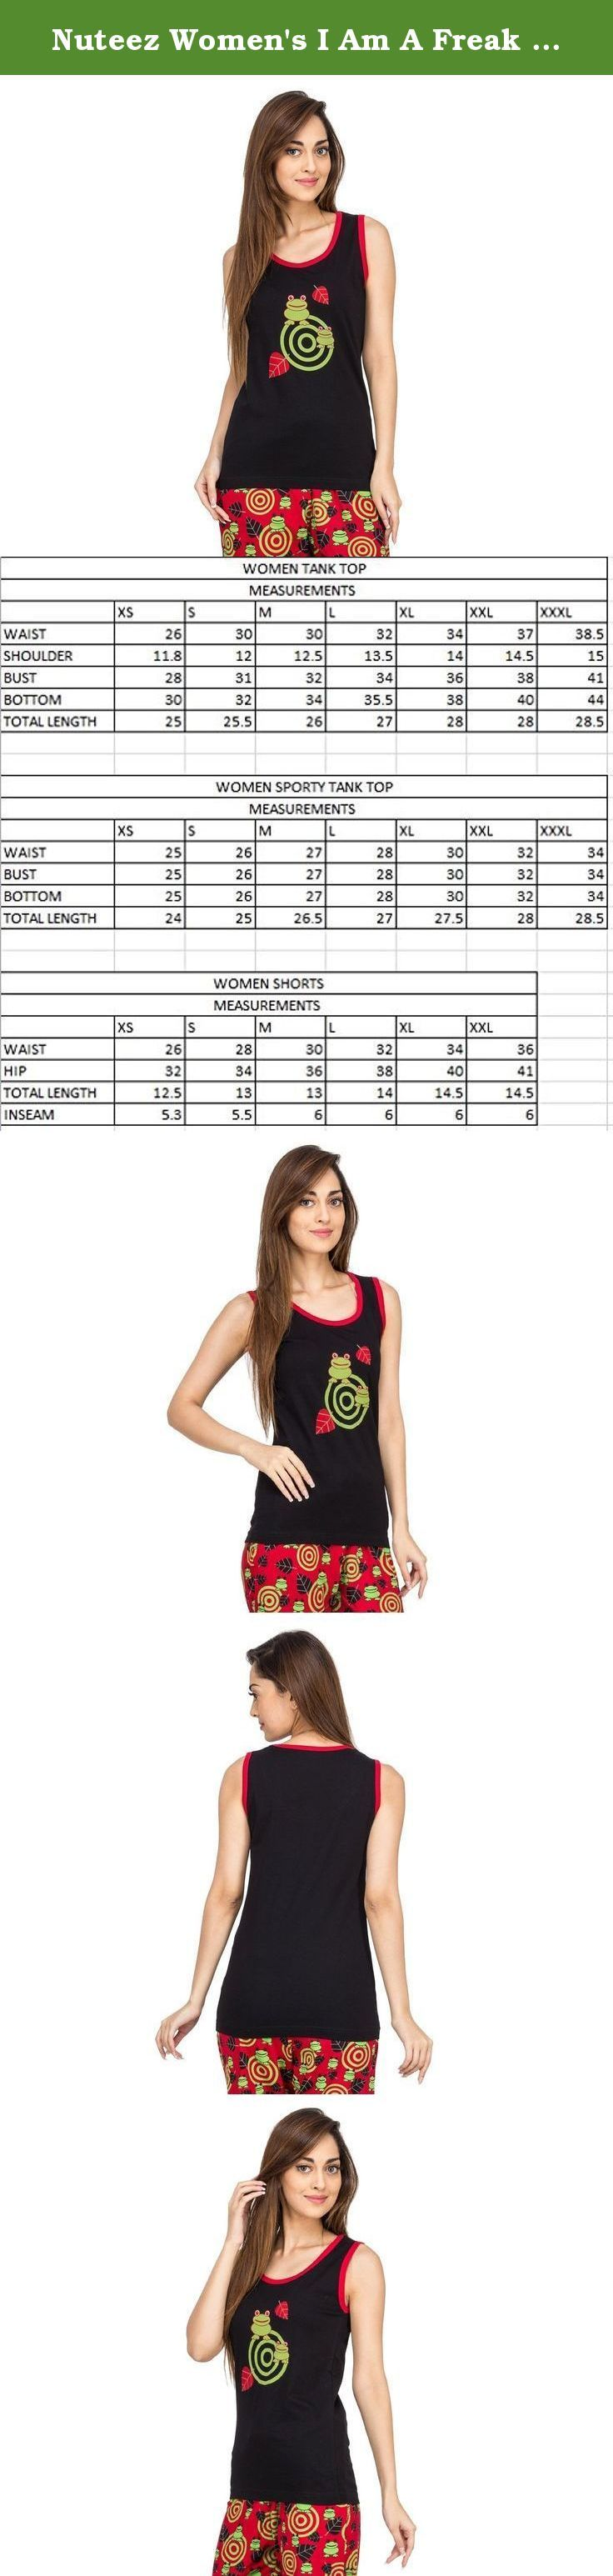 Nuteez Women's I Am A Freak Cotton Tank Top And Shorts Set Large Multi-Coloured. AOP TANK TOP & SHORTS SET IN 100% COTTON.